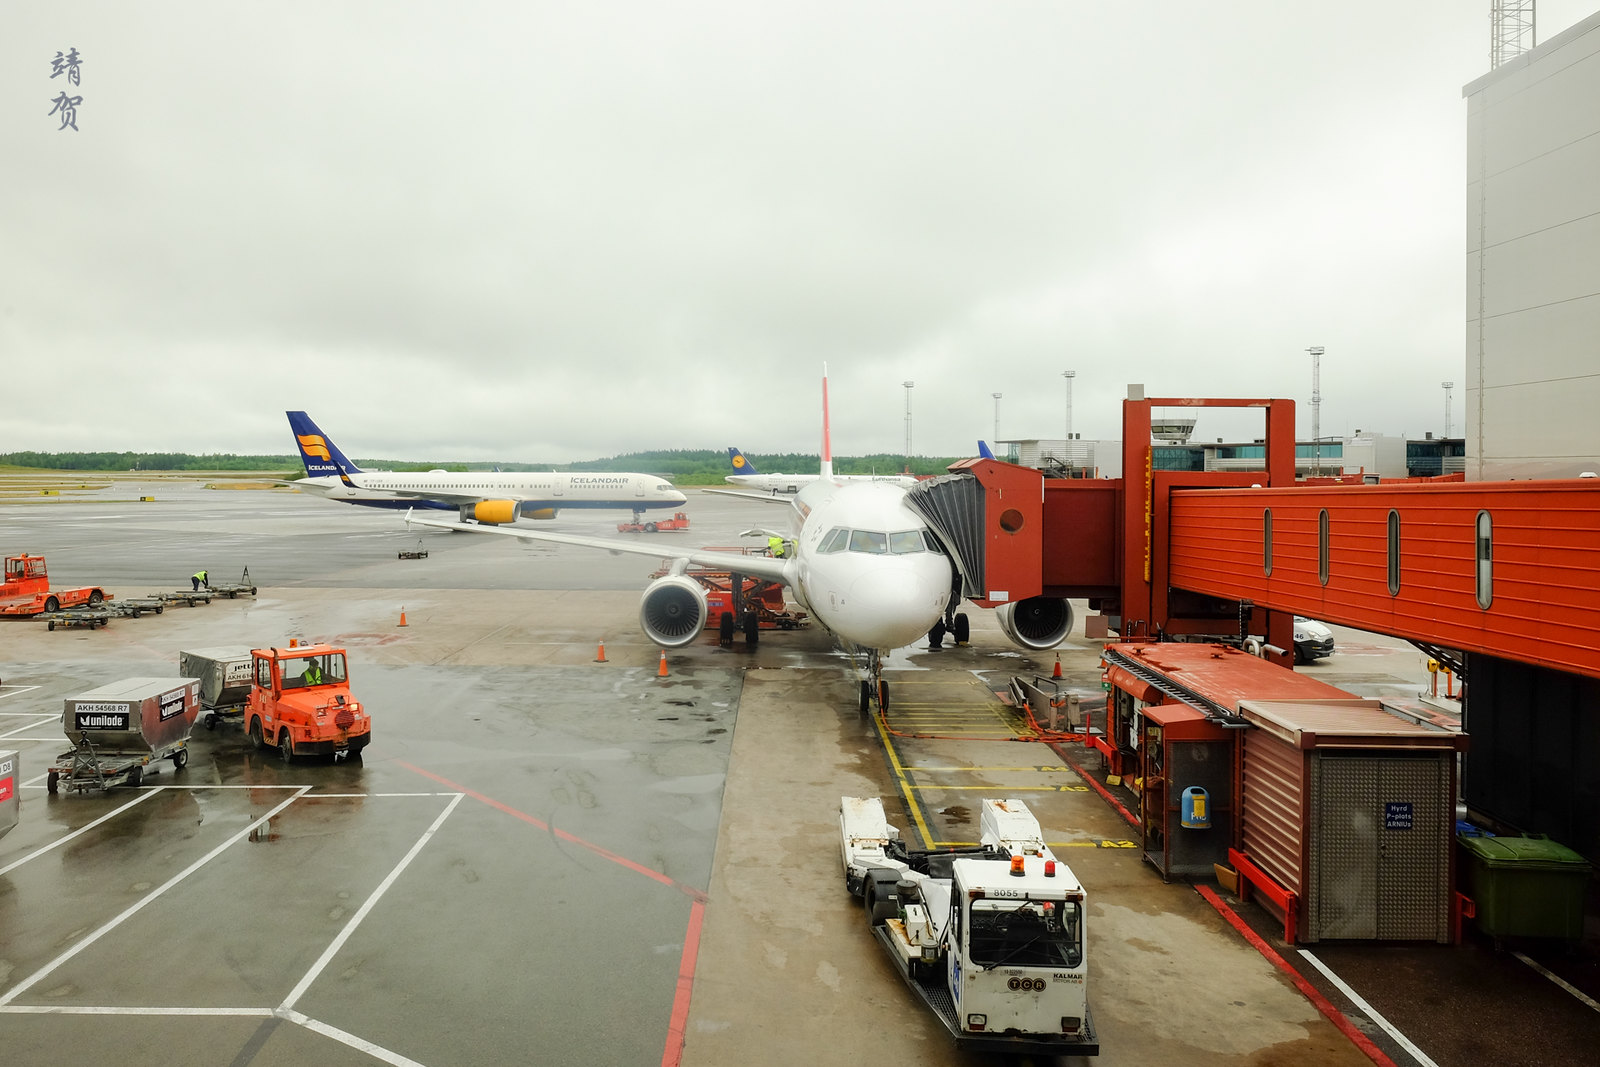 Swiss A320 and Icelandair Boeing 757